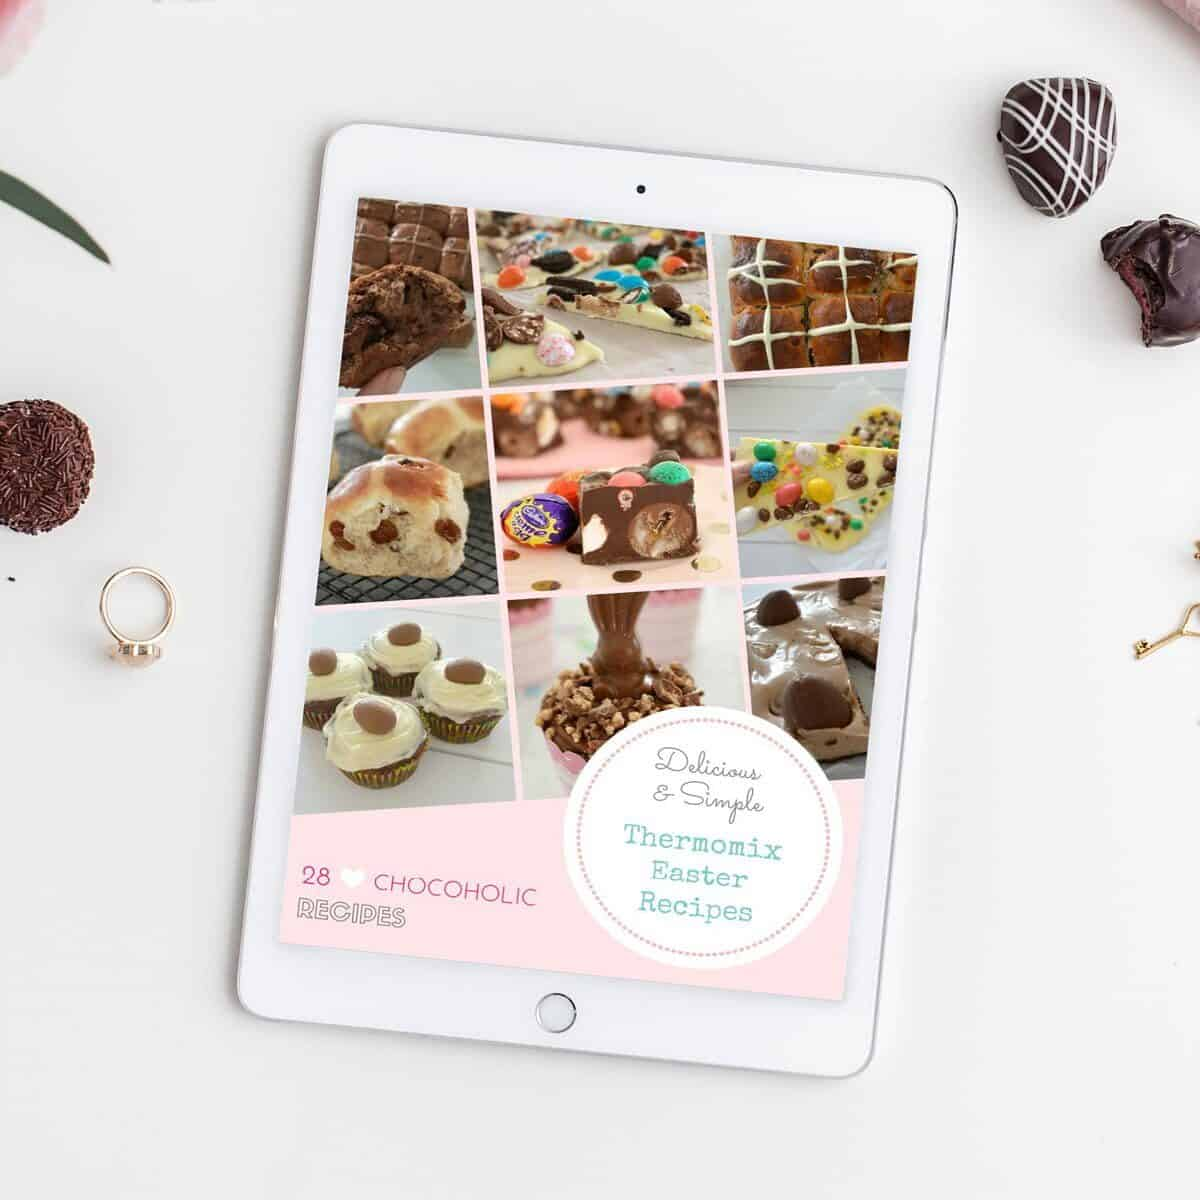 Thermomix Easter Recipes eBook